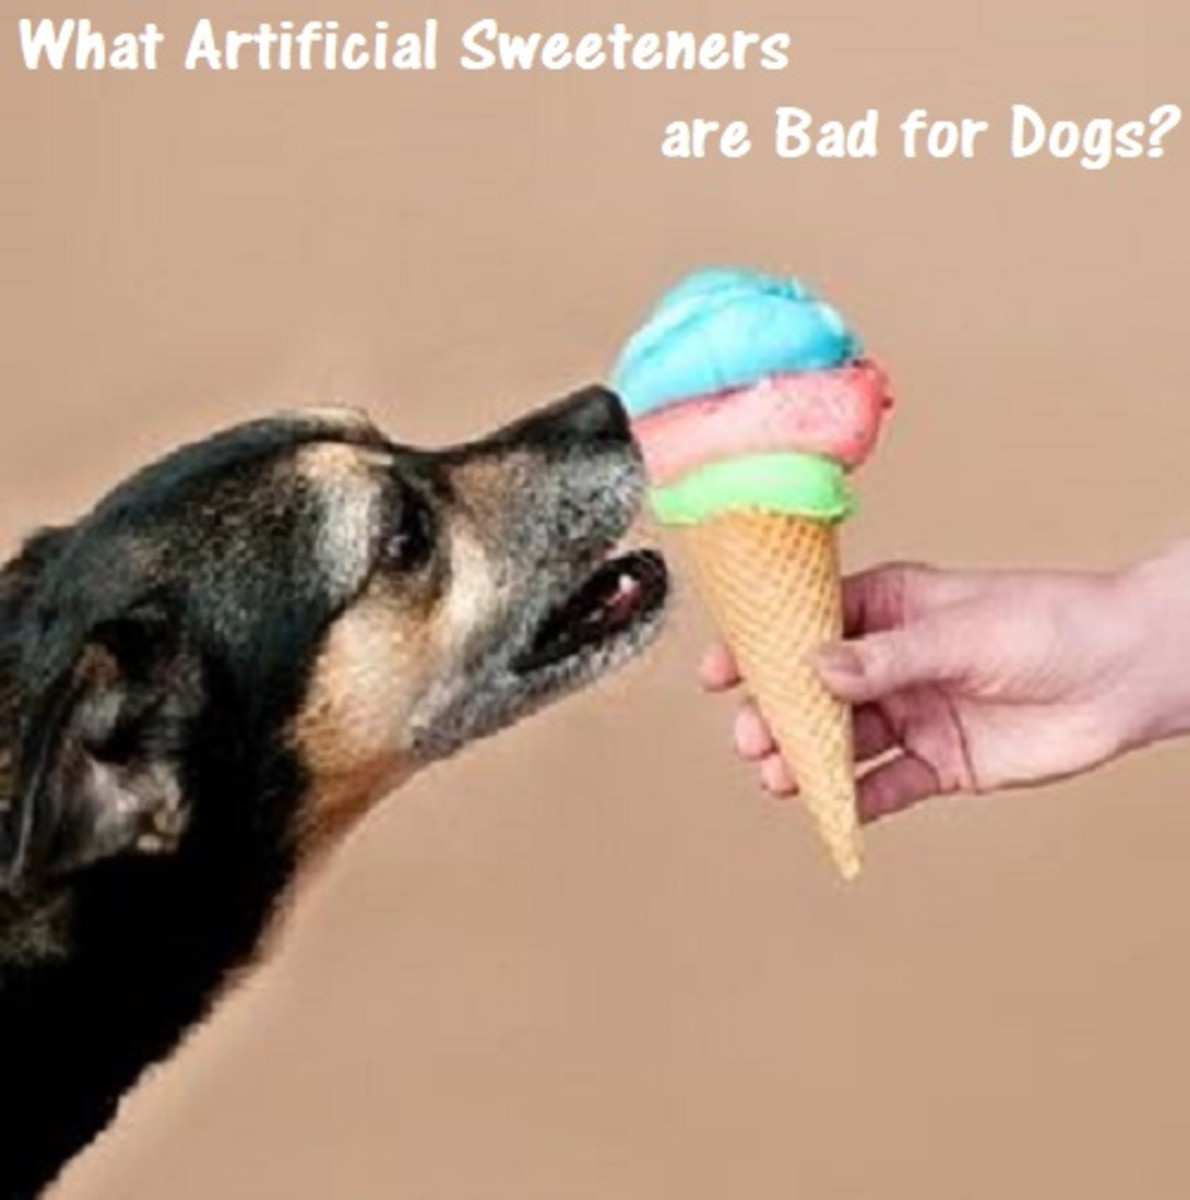 is sucralose bad for dogs